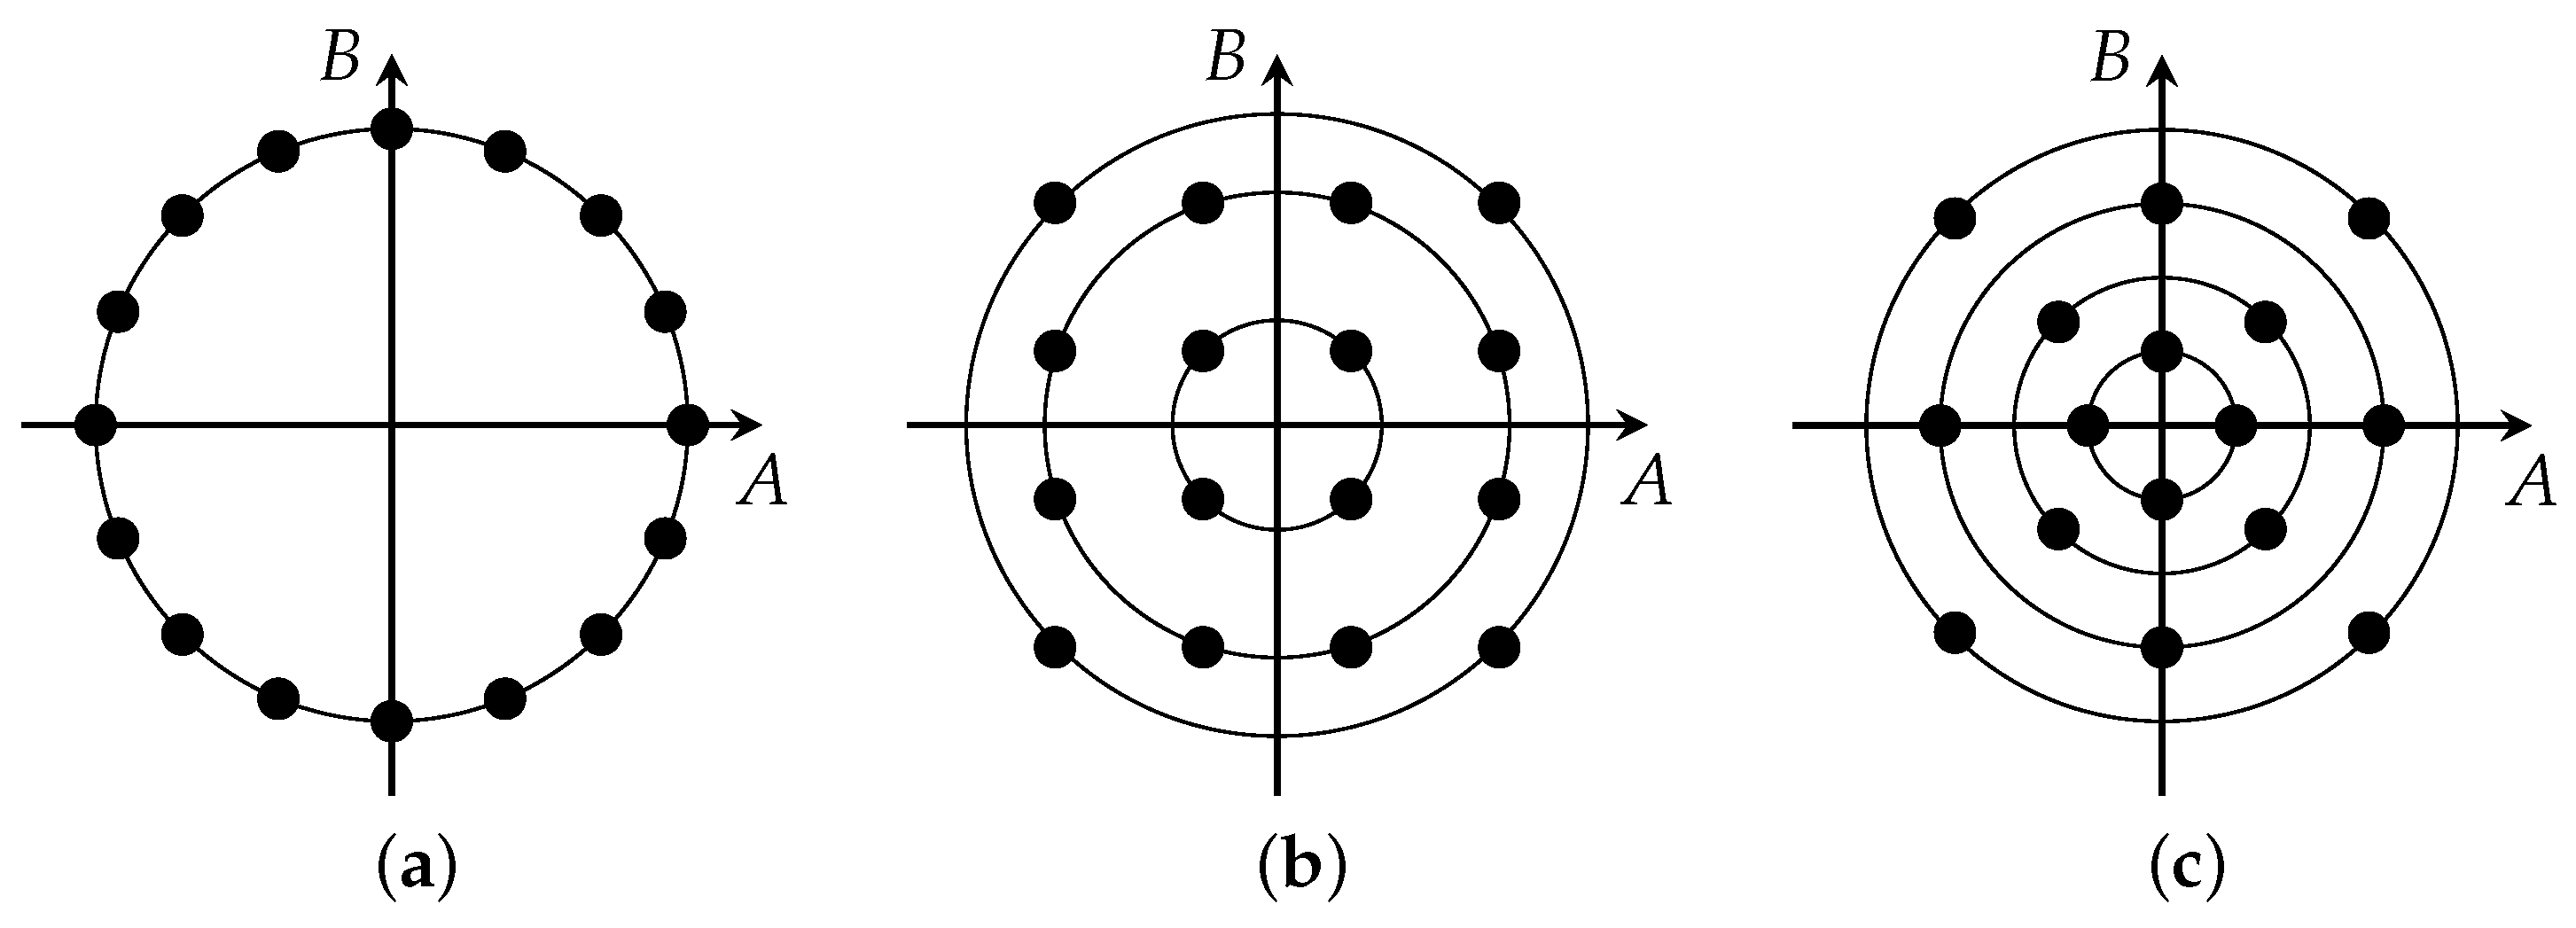 constellation diagram of 16 psk simple traffic light entropy free full text information theoretic analysis